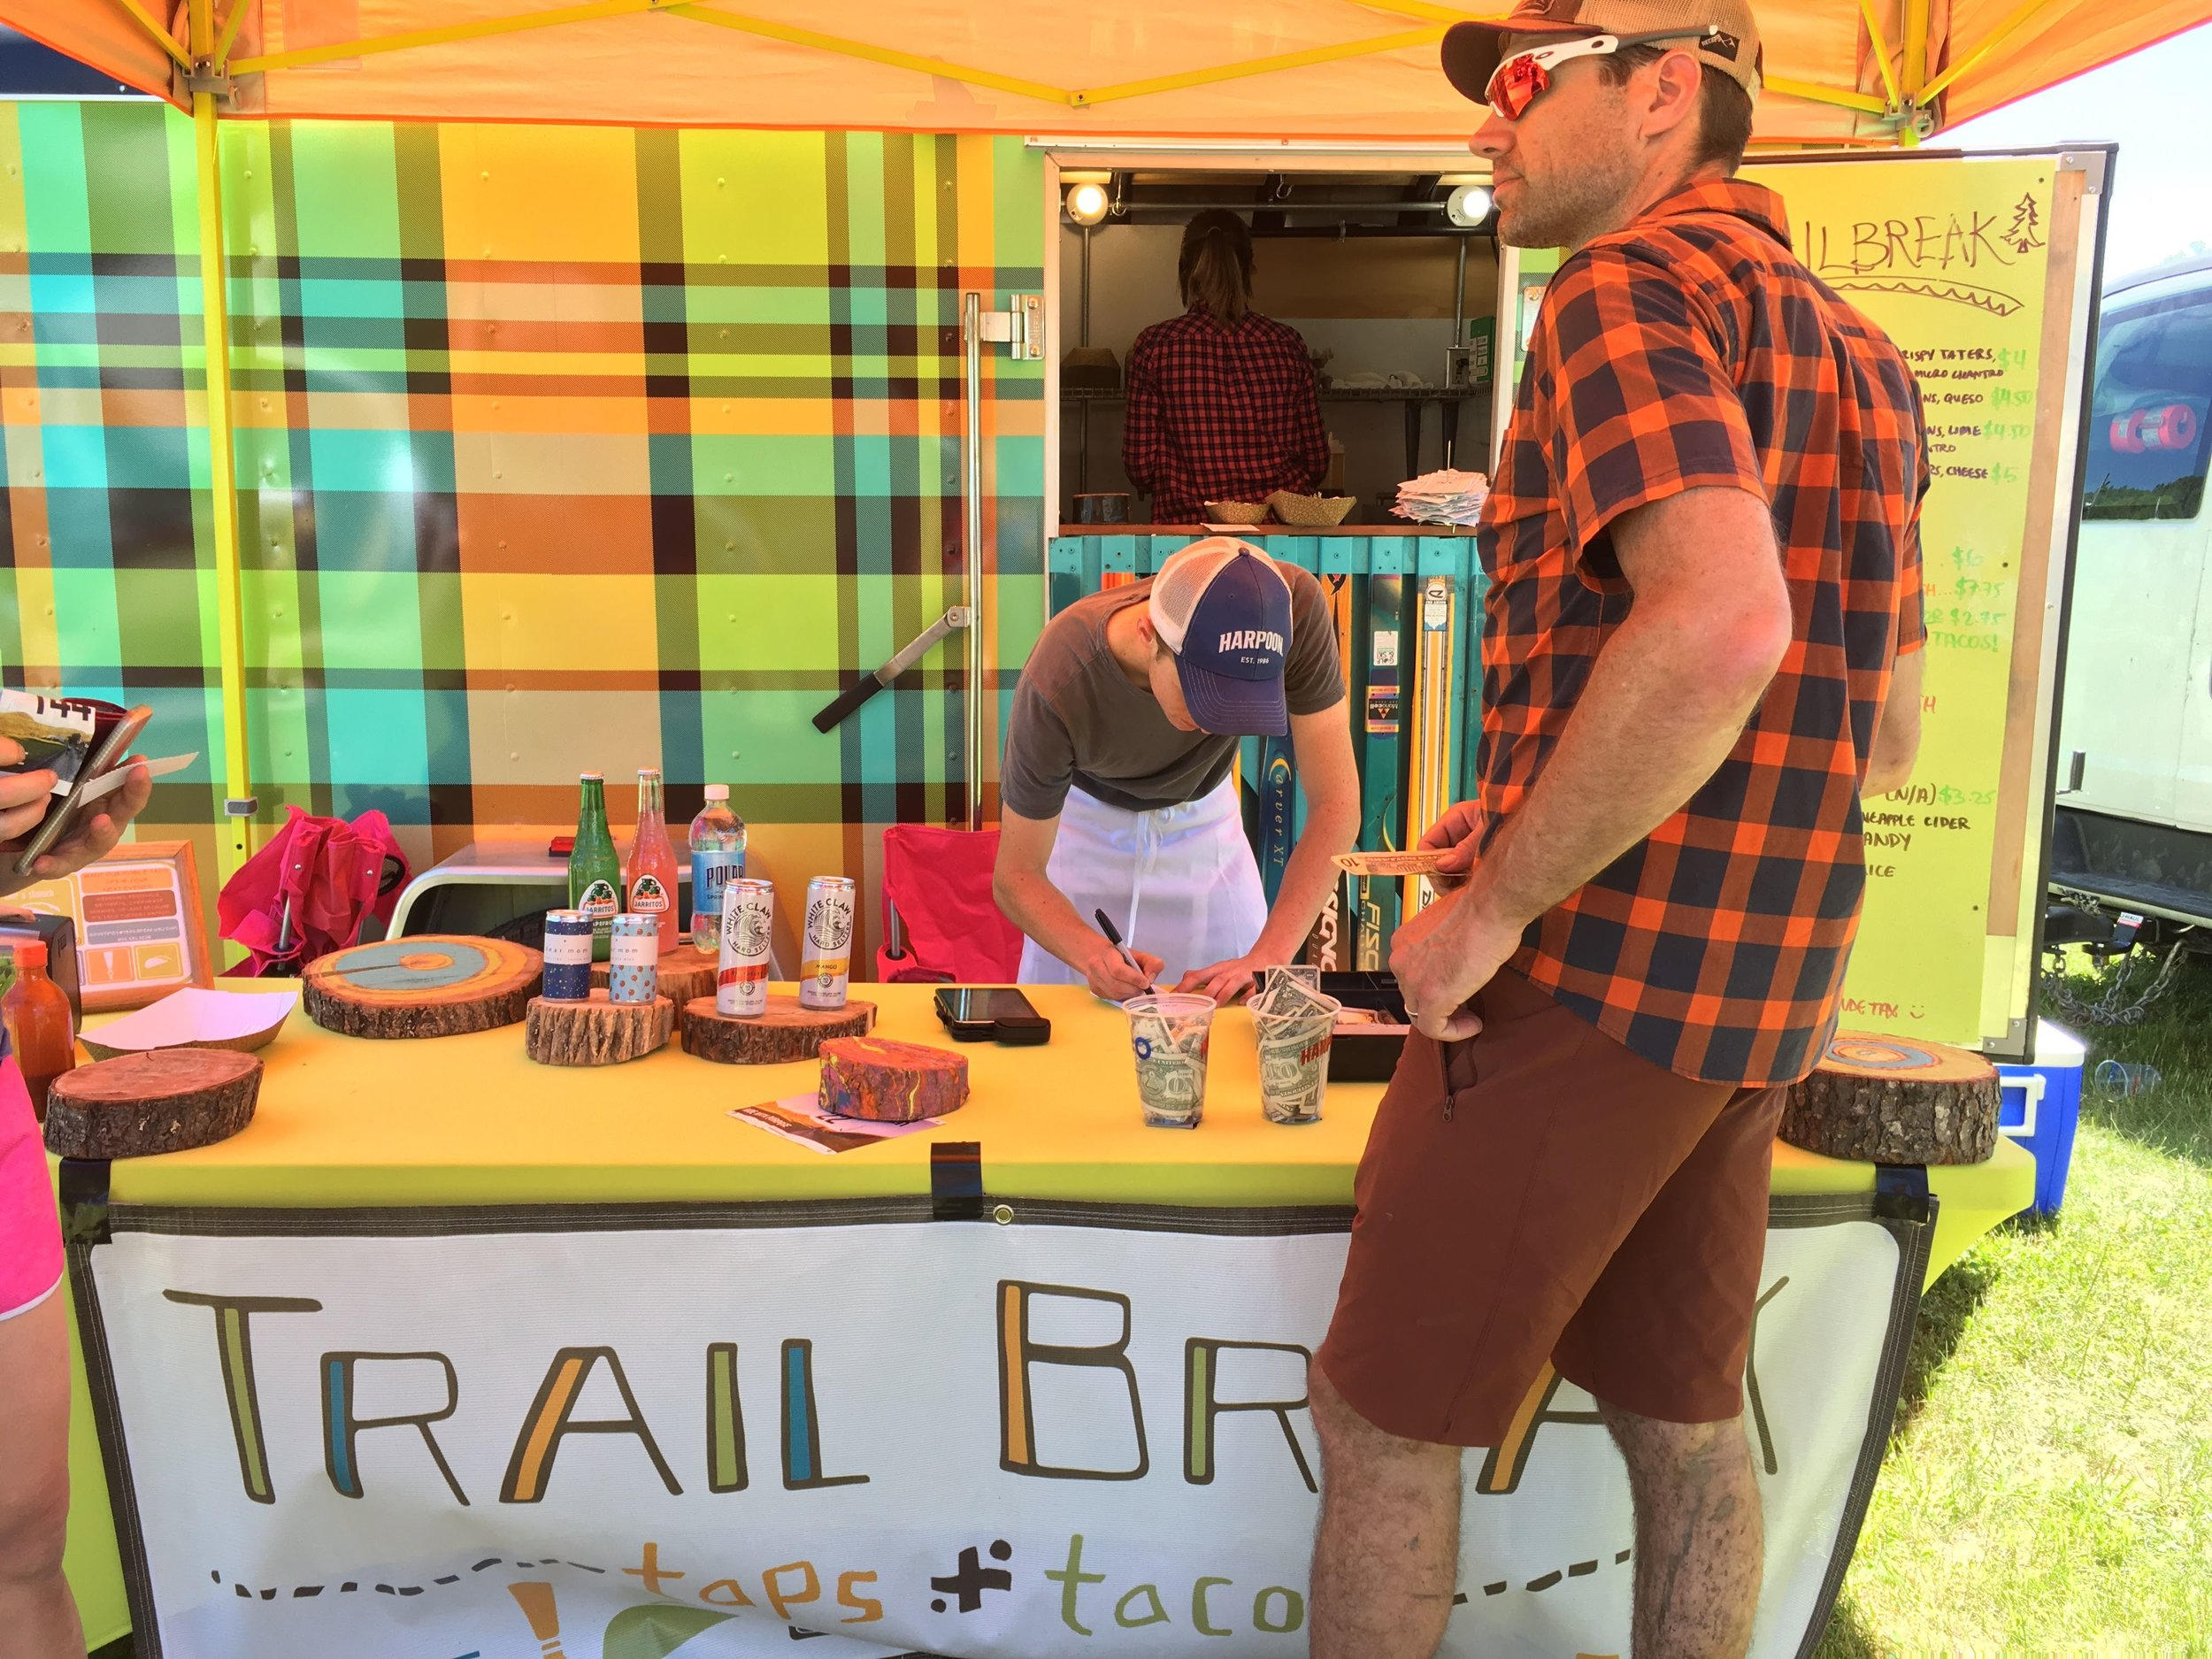 Trail Break Taps and Tacos